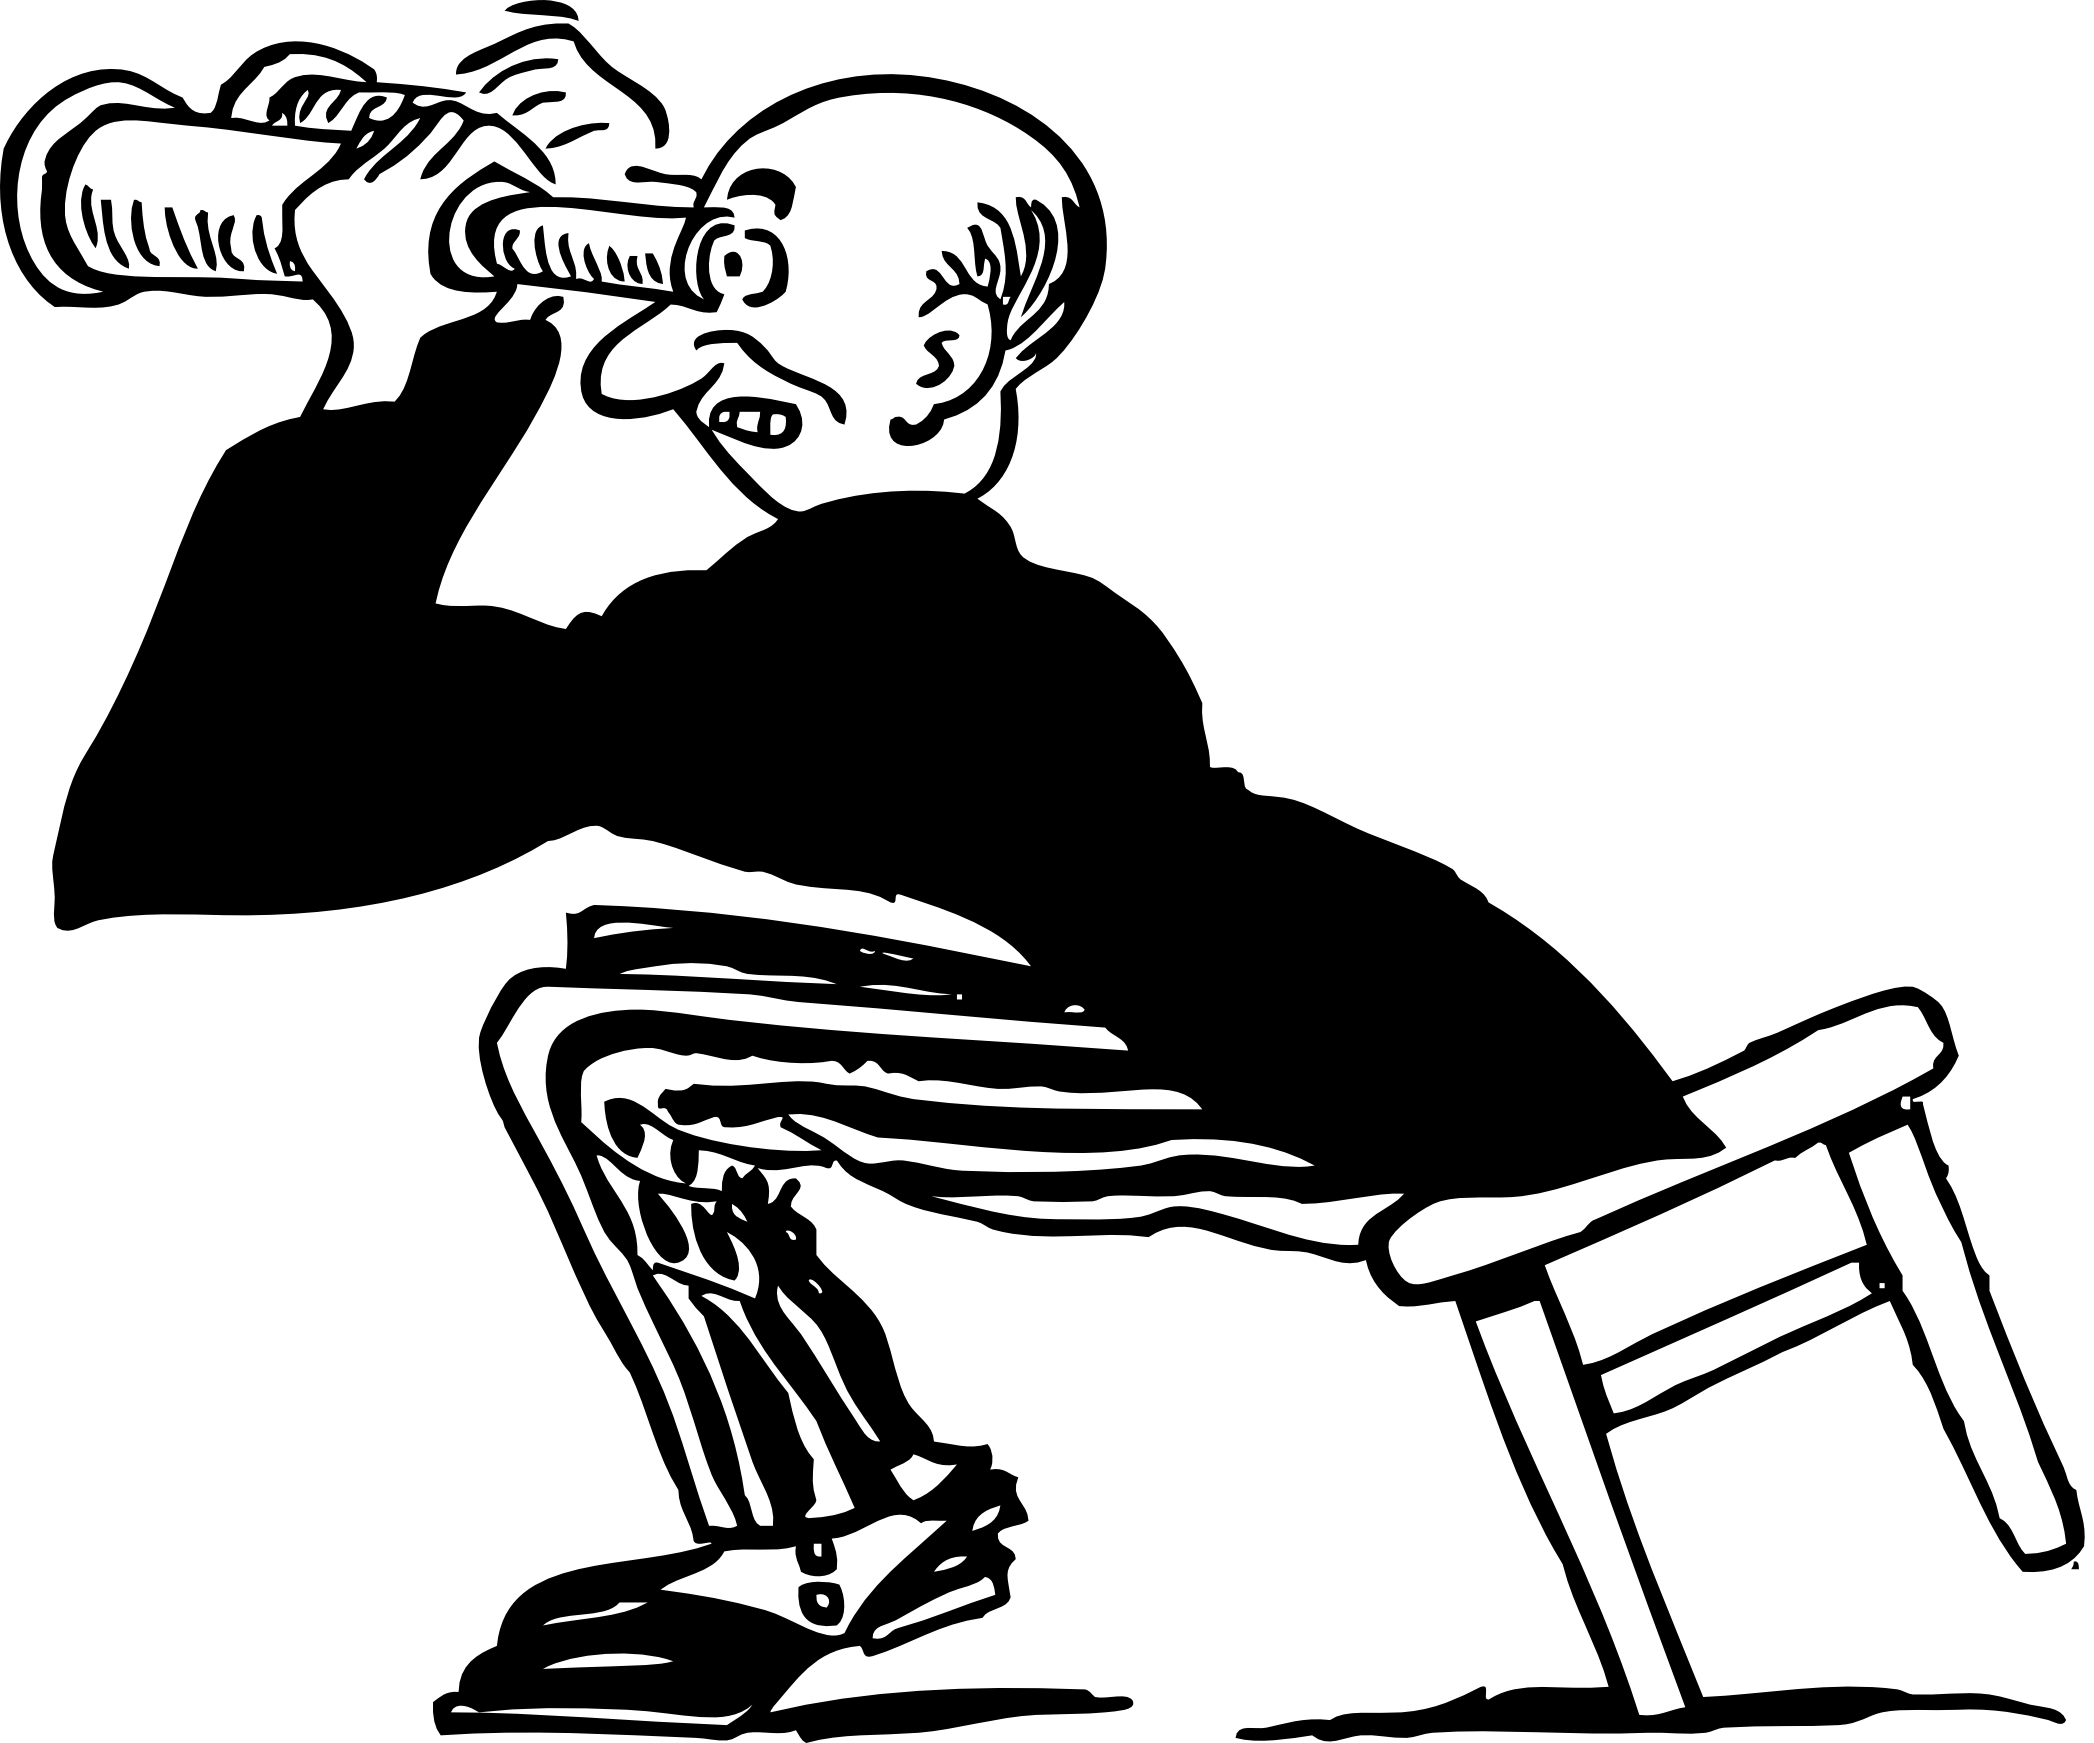 Free Retro Clipart Illustration Of Man Using Binoculars